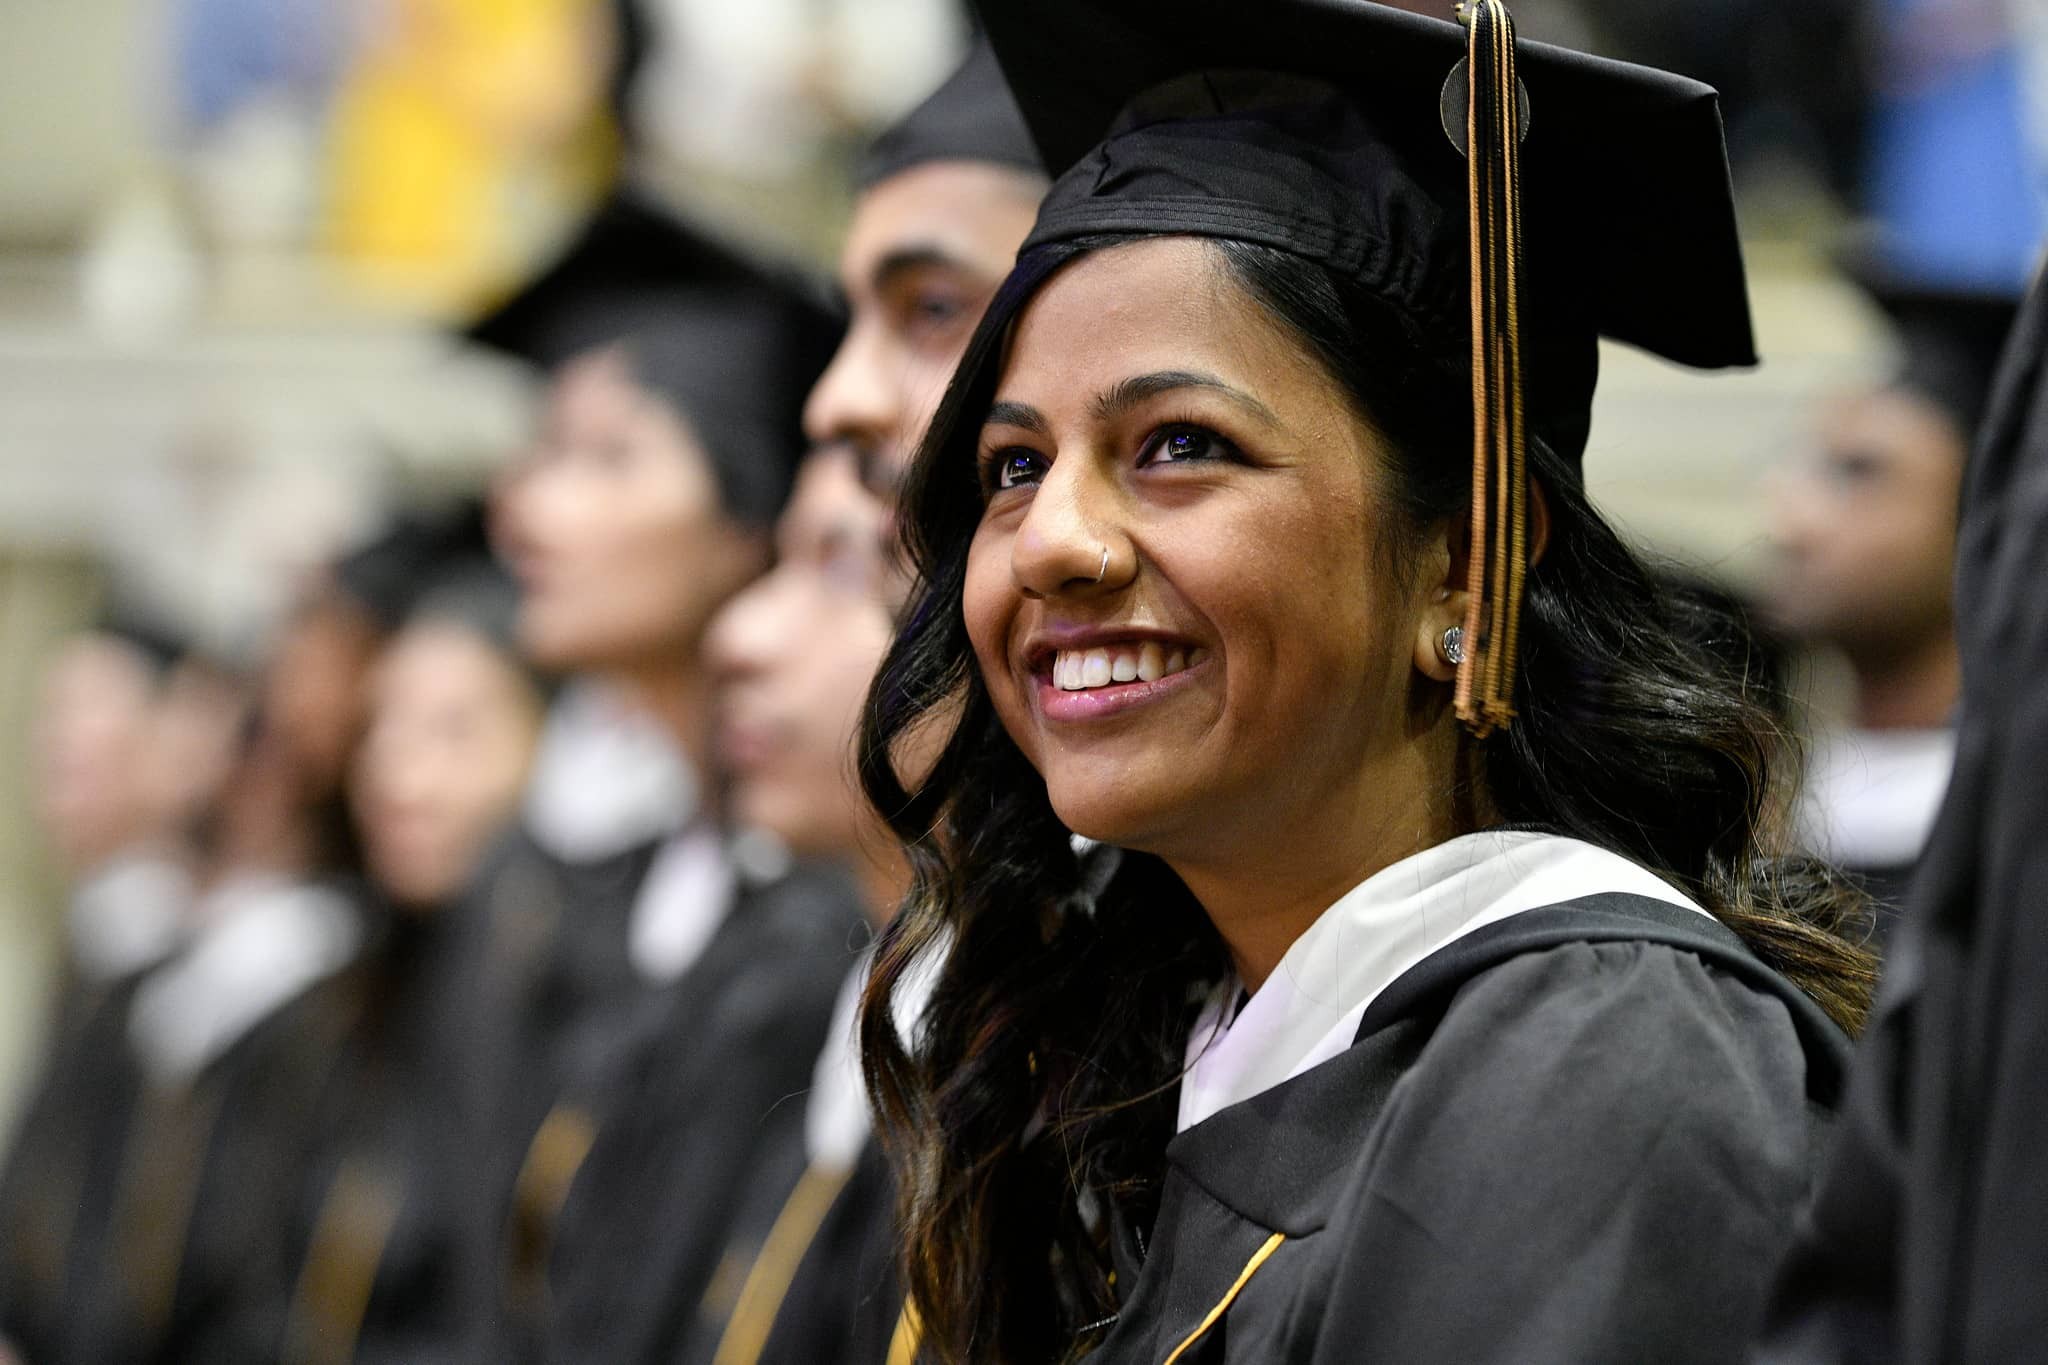 Johns Hopkins SAIS student in cap and gown during commencement